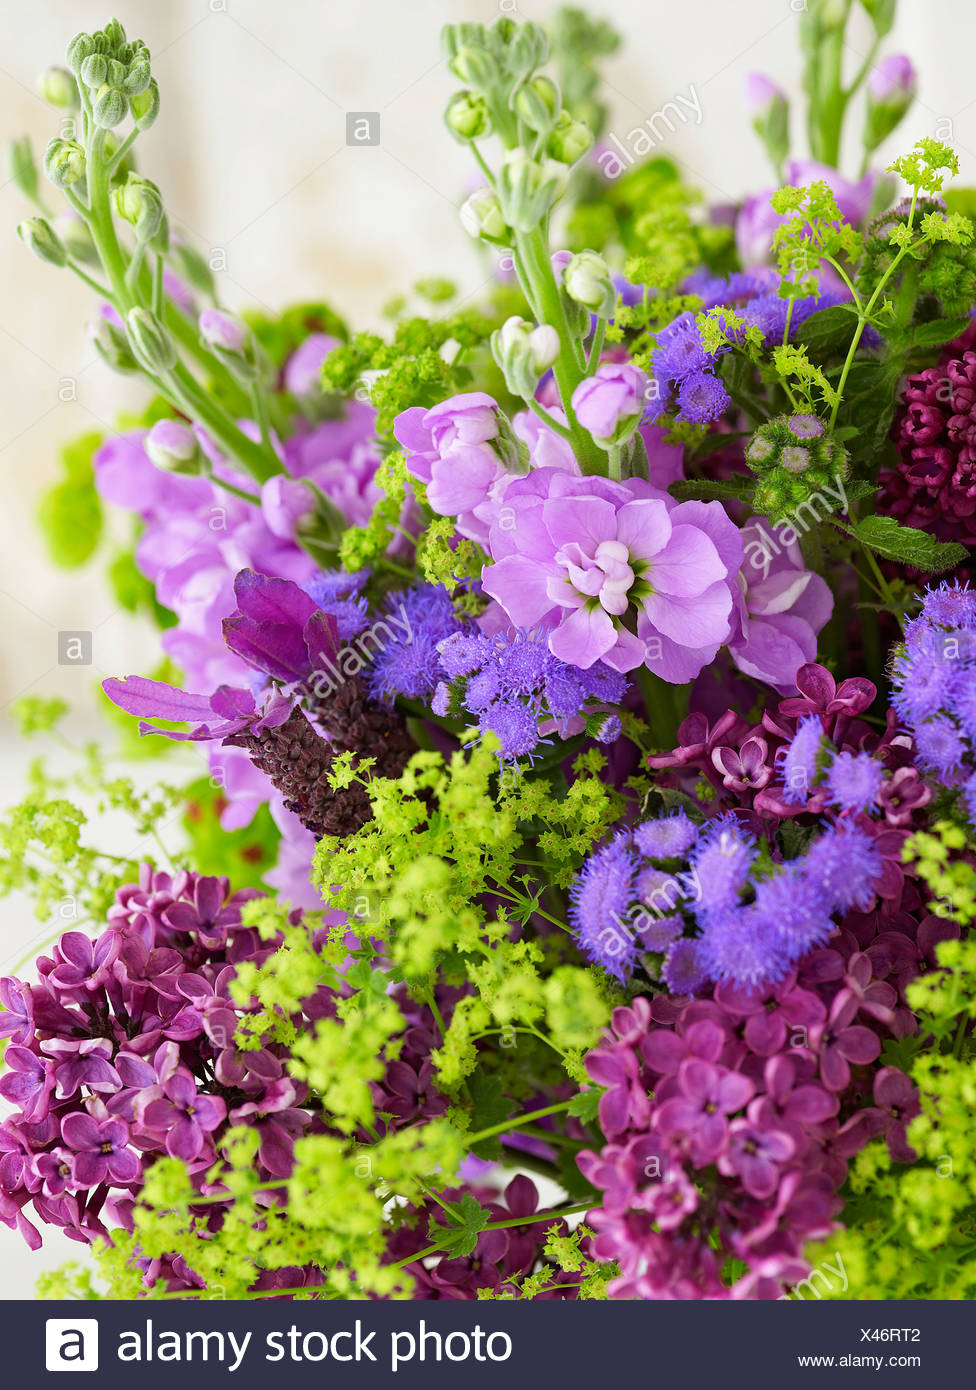 Bunch of flowers including stocks, alchemilla, lavender, euphorbia, ageratum, lilac, close-up - Stock Image